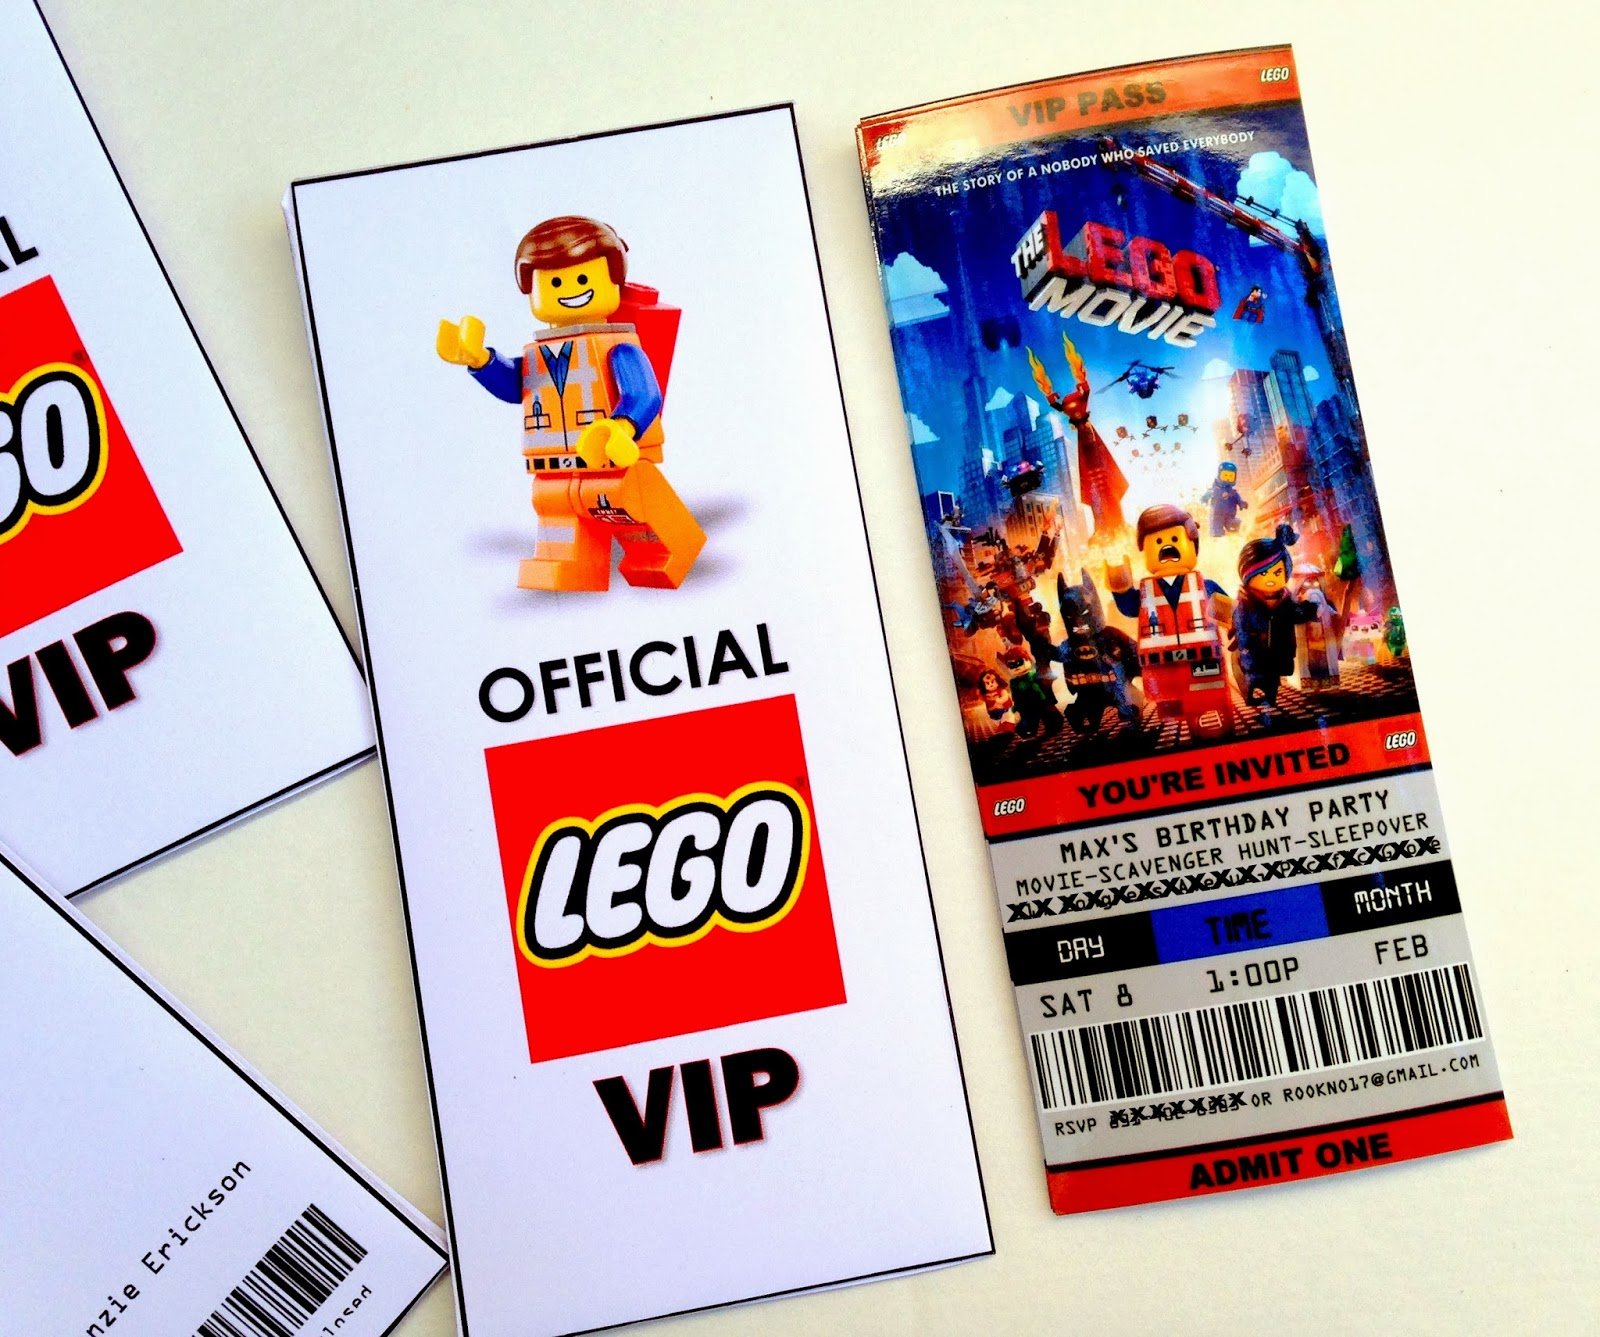 Nice Free Printable Ticket Style Party Invitations    The Lego Movie Regarding Free Printable Ticket Style Invitations